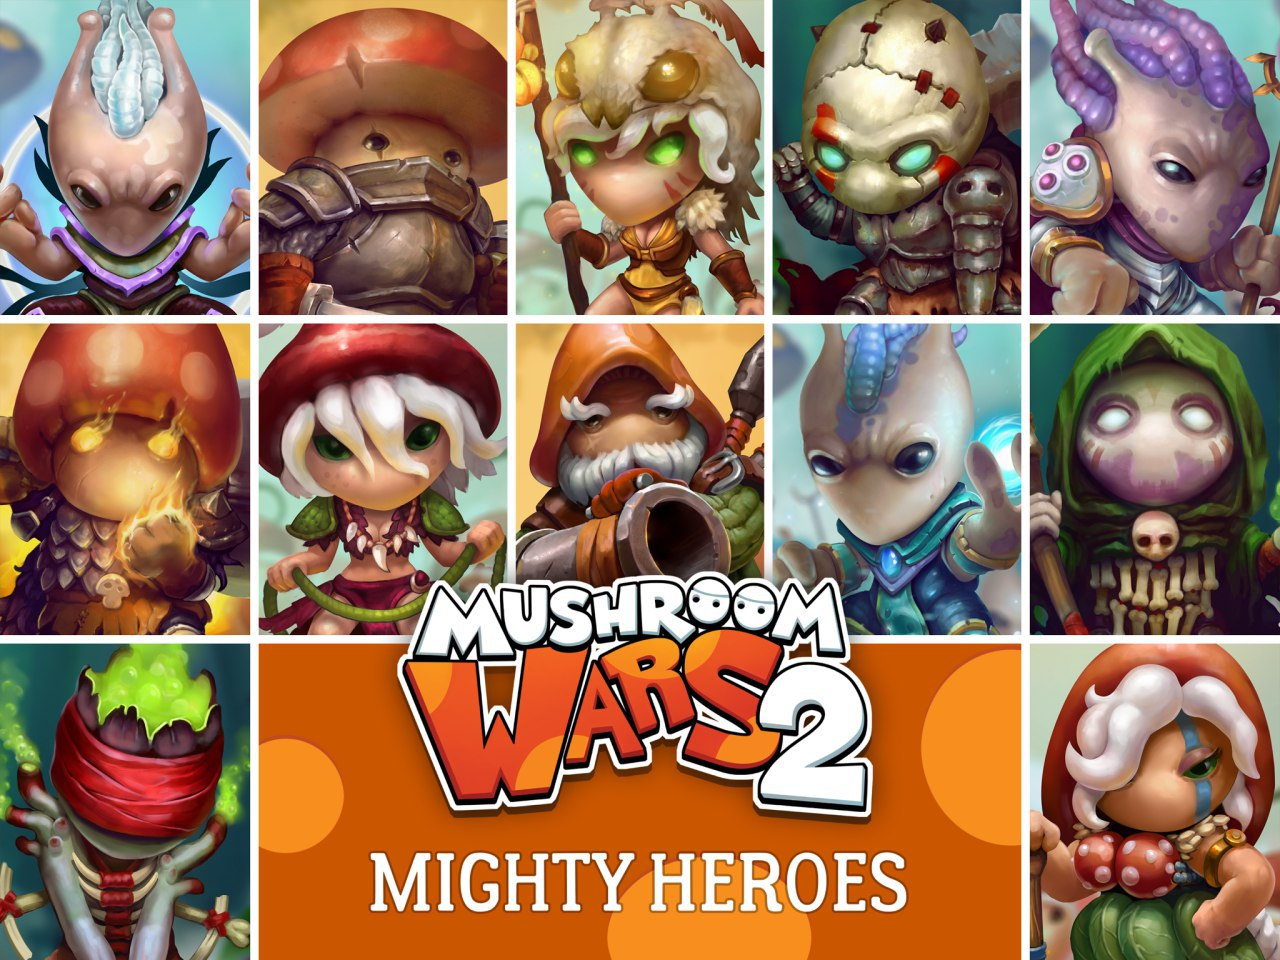 Mushroom Wars - warriors